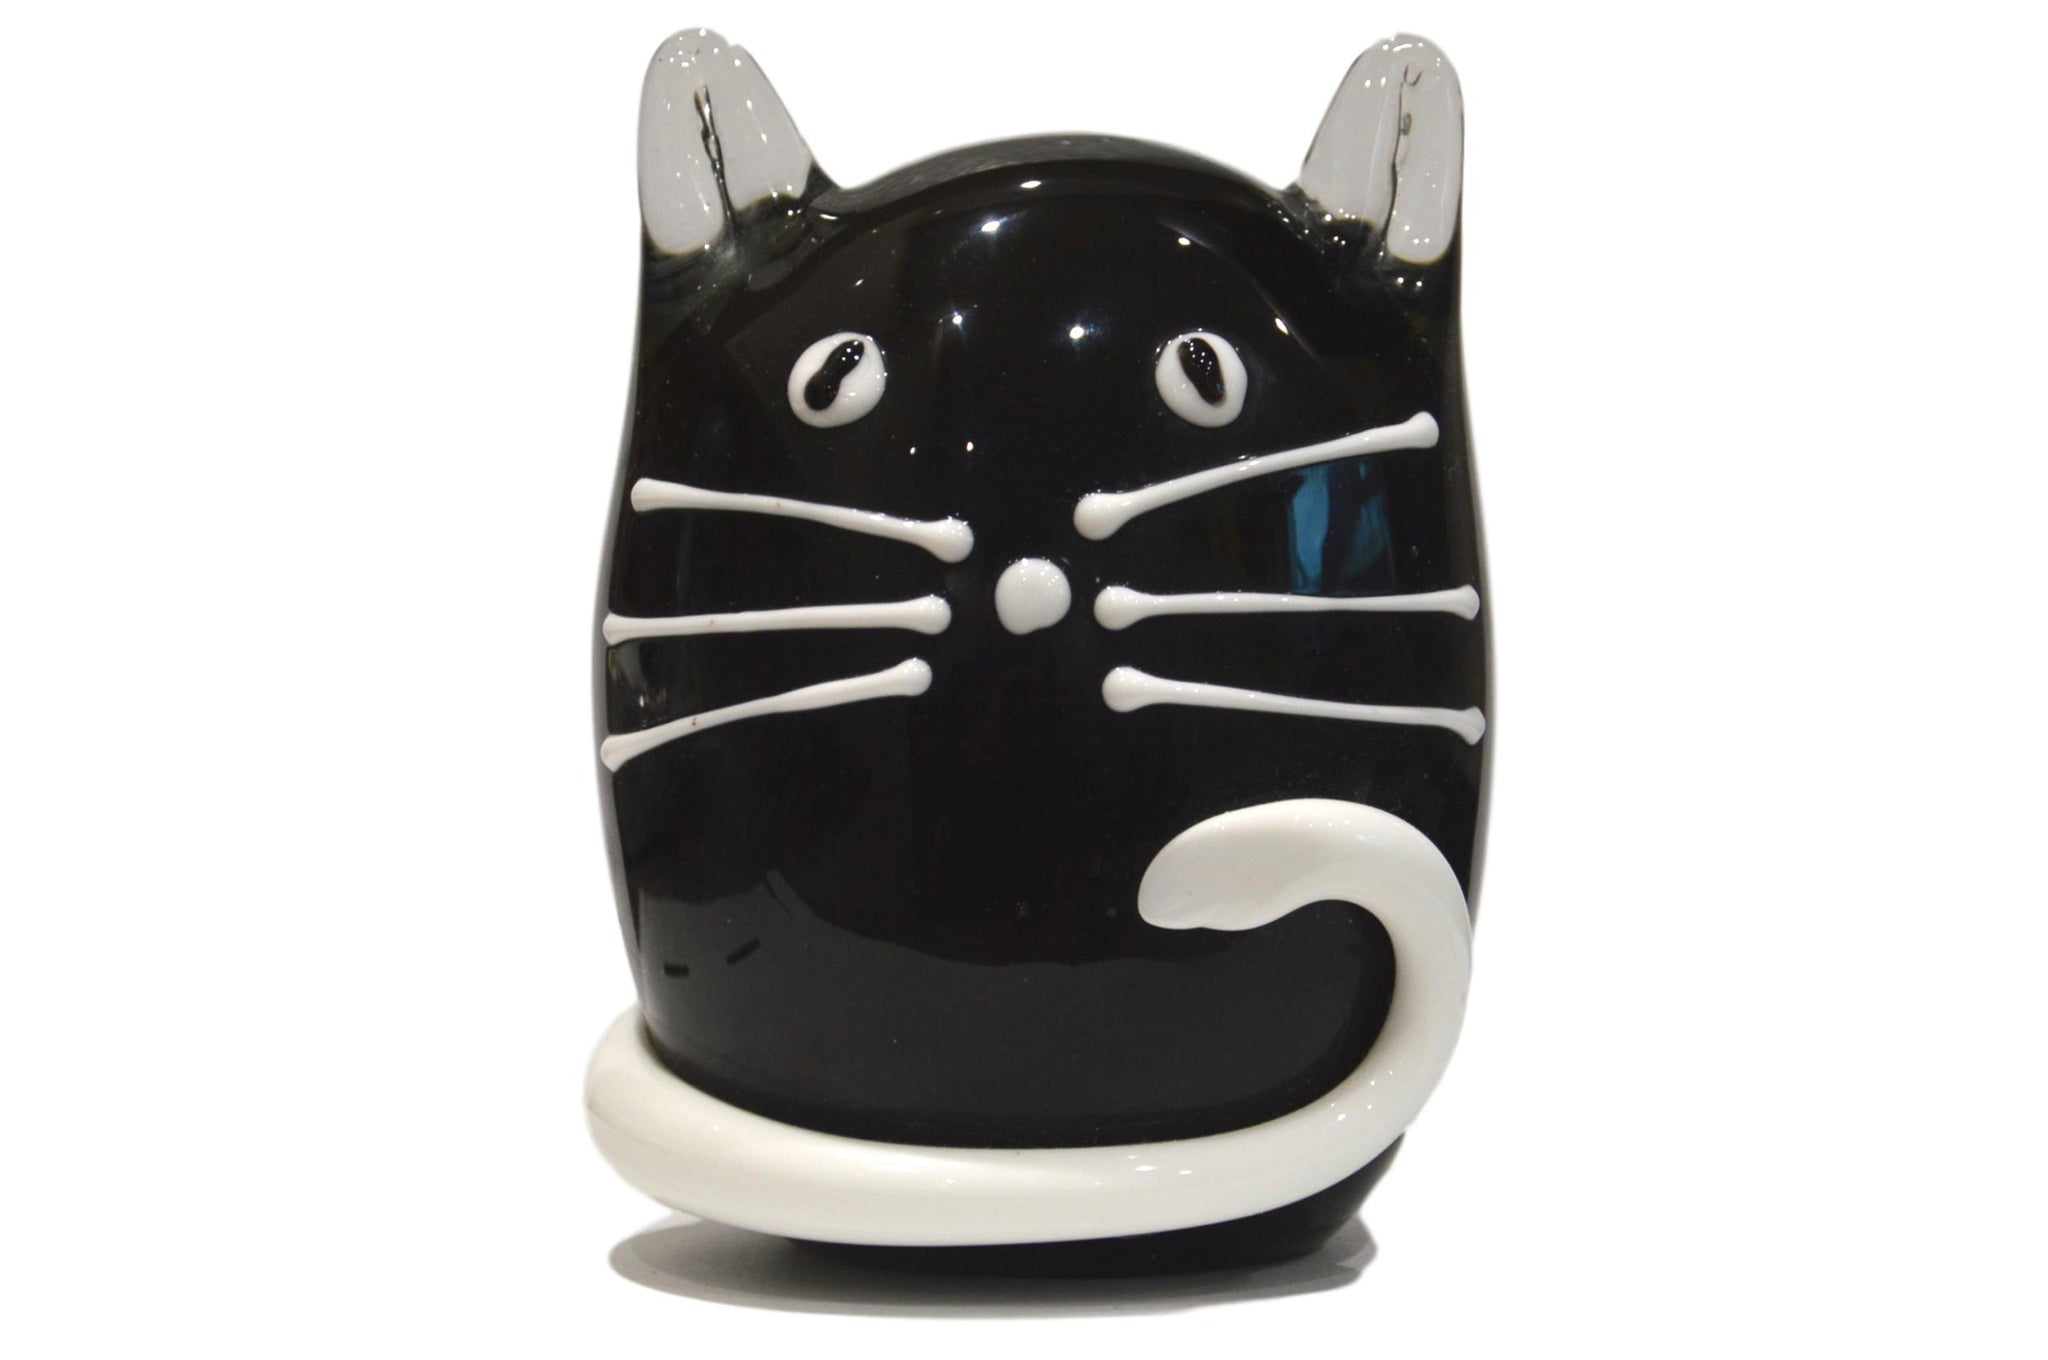 Objets D'Art Black & White Cat Glass Ornament